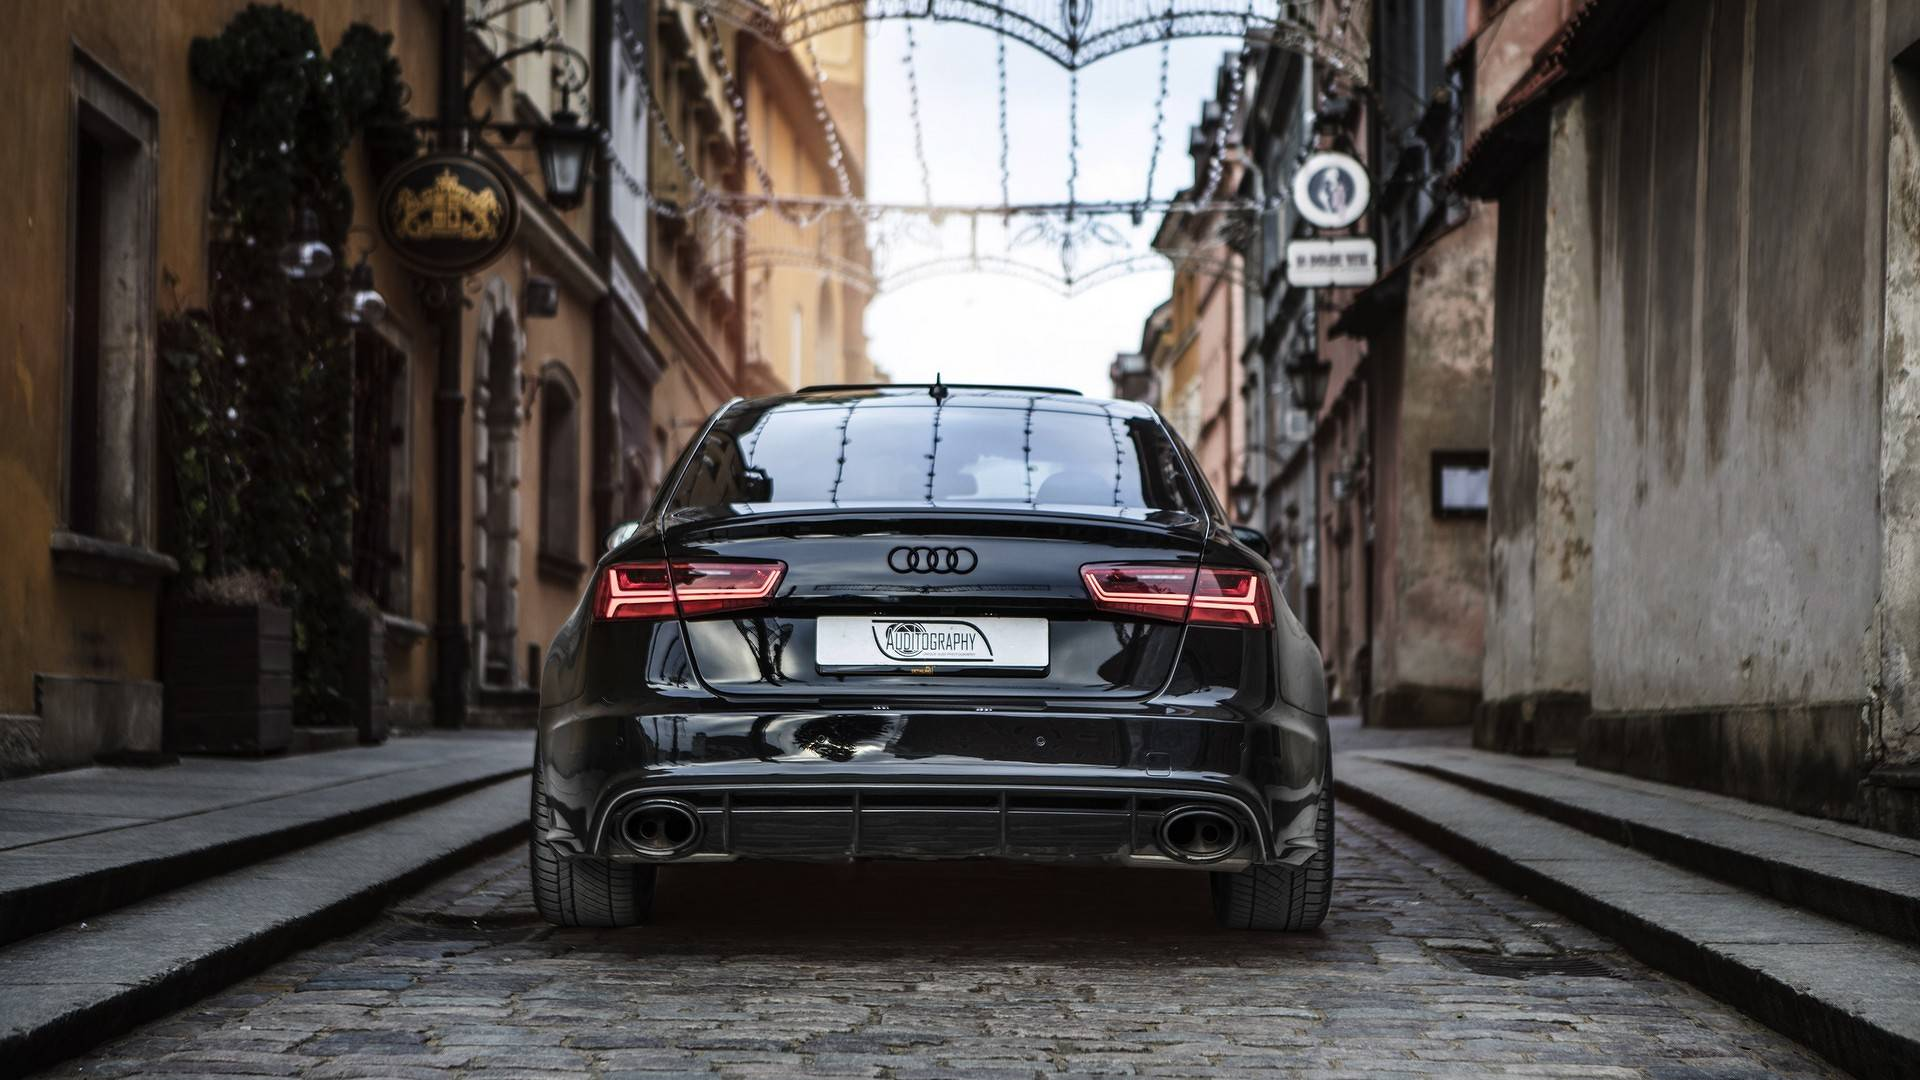 Audi Hasnt Made An RS Sedan This Generation Yet One Exists - Audi rs6